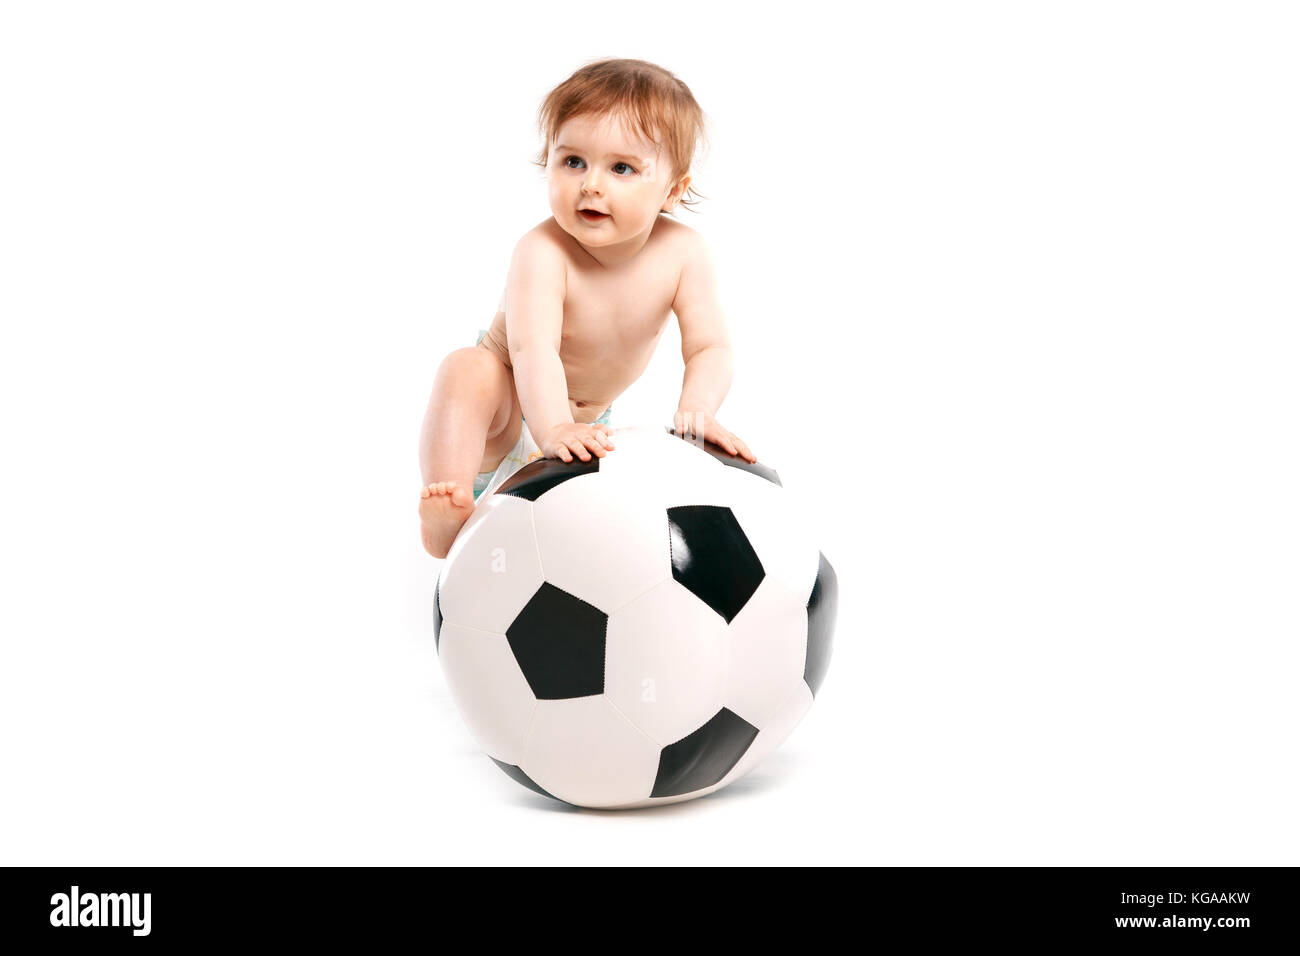 fan with a soccer ball - Stock Image